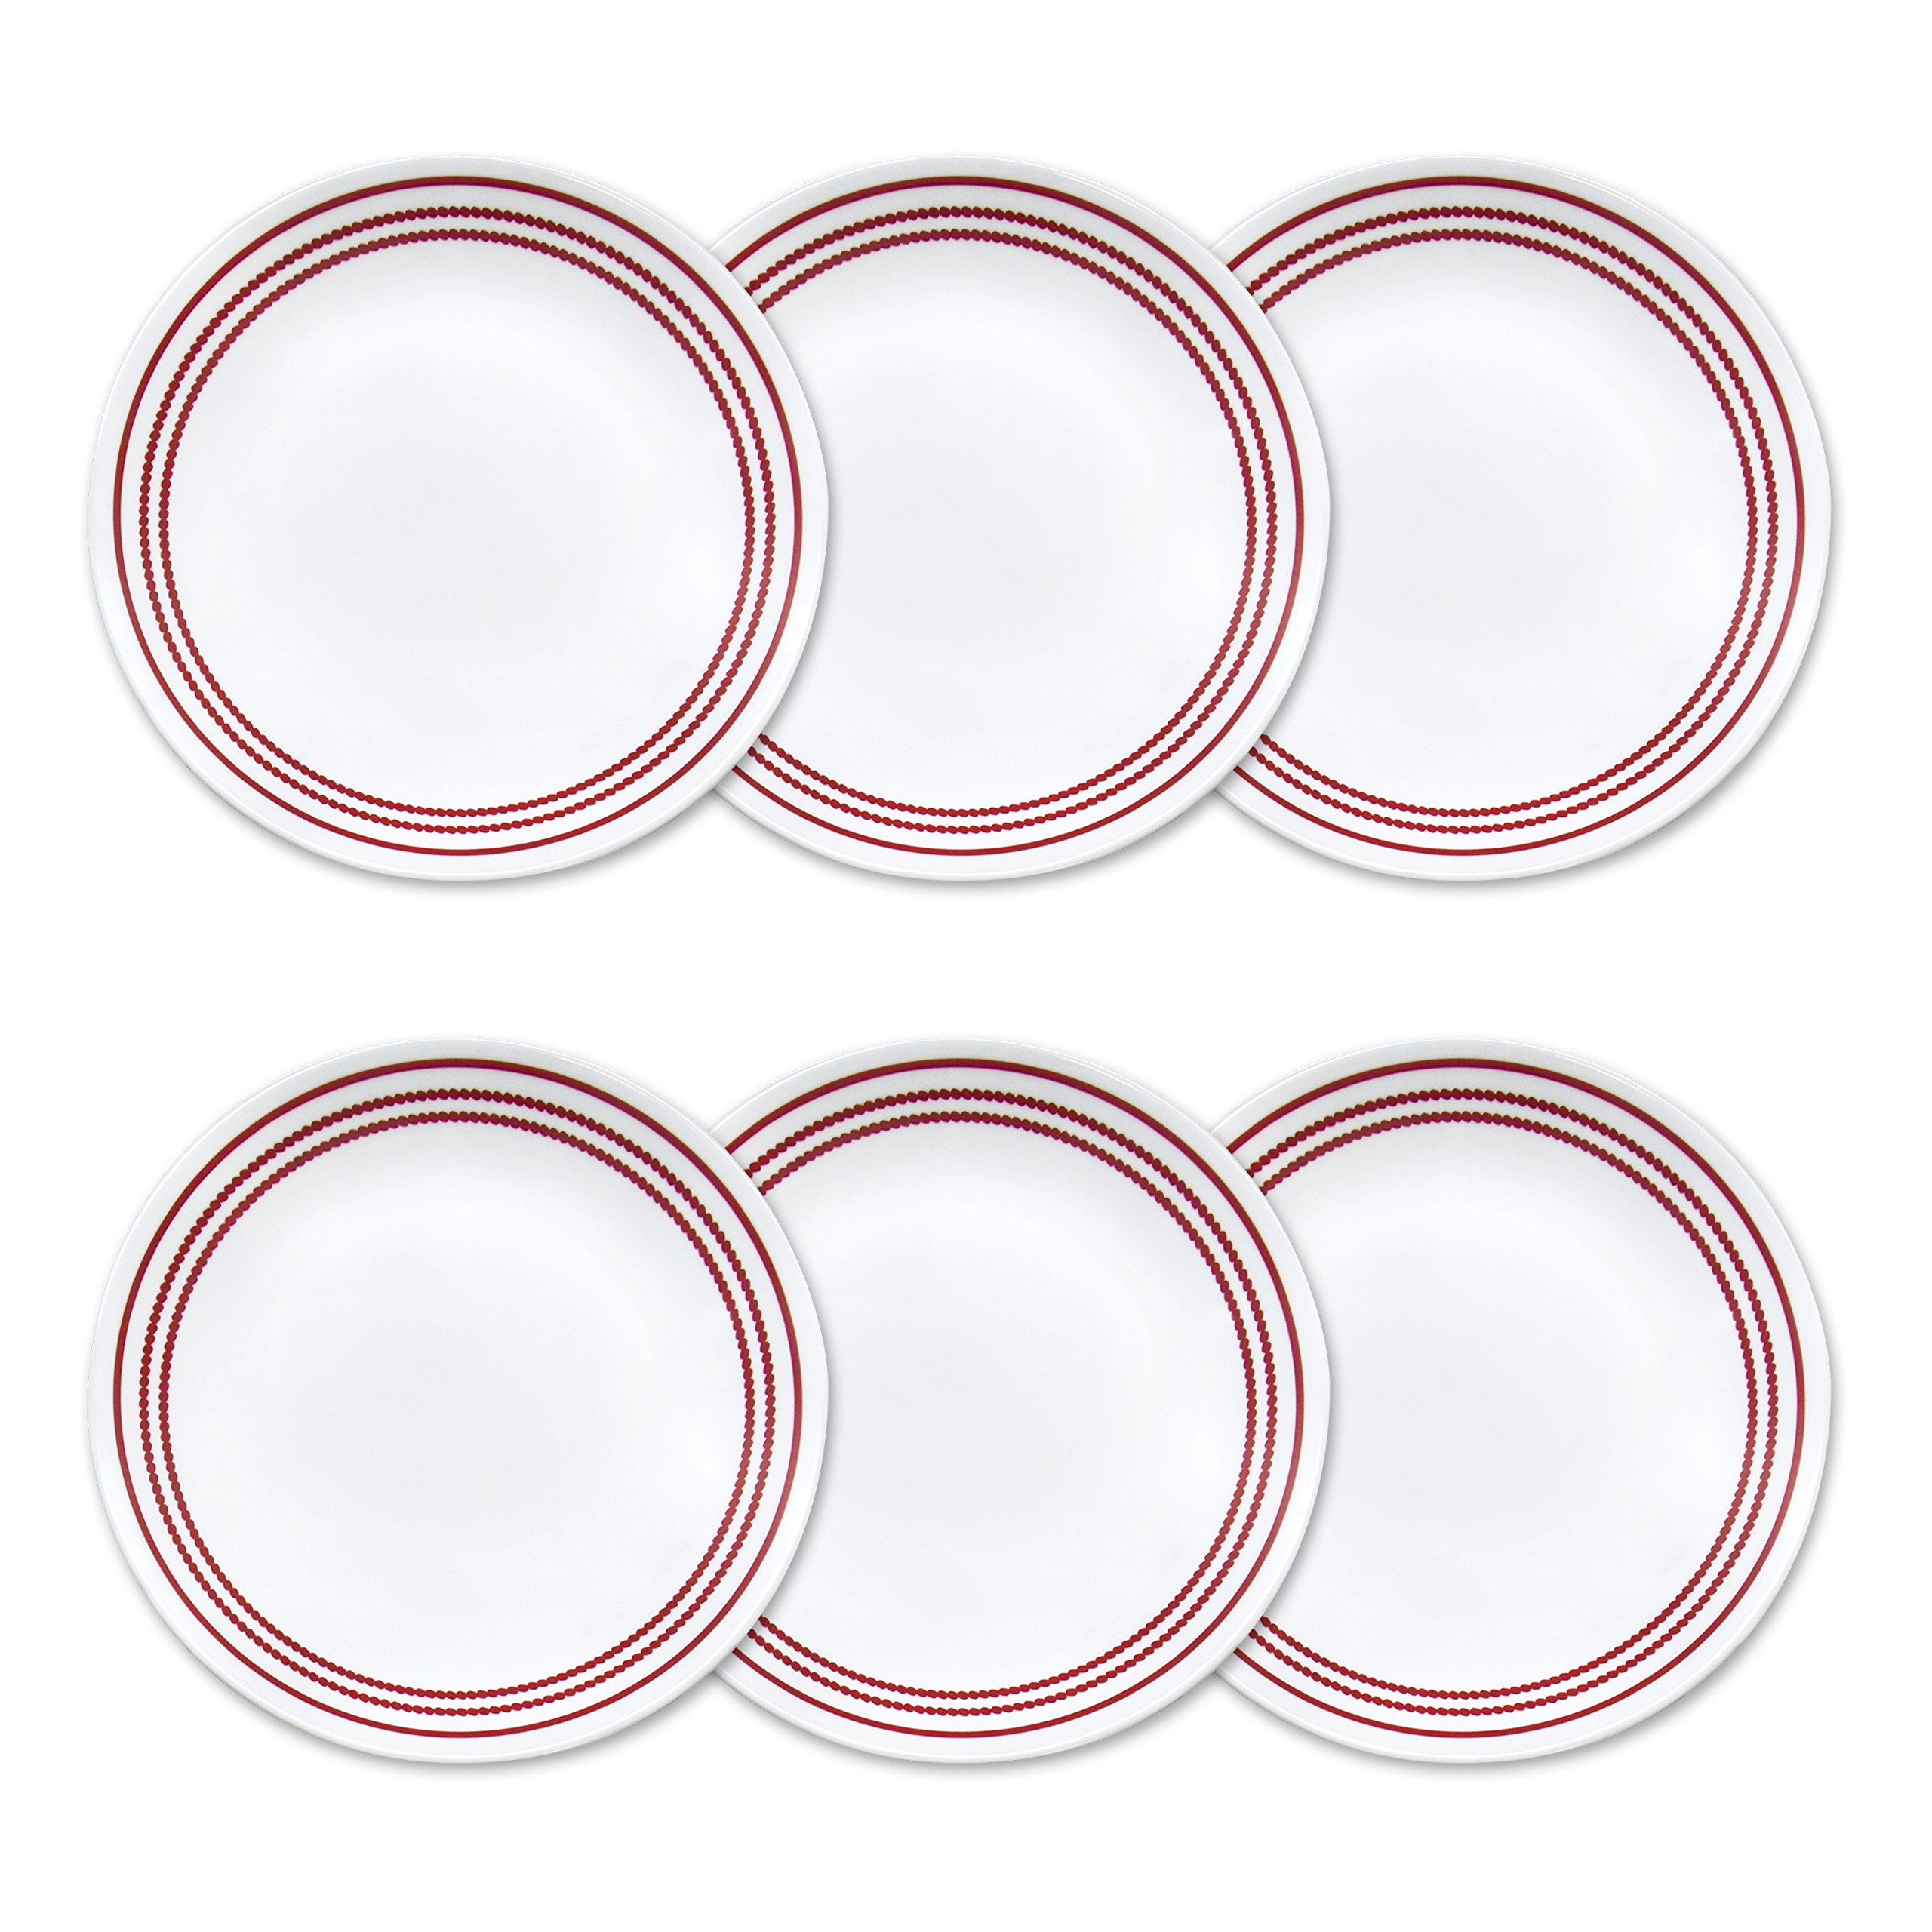 Corelle Livingware 6-Piece Ruby Red Lunch Plate Set, 8.5-Inch, White by Corelle